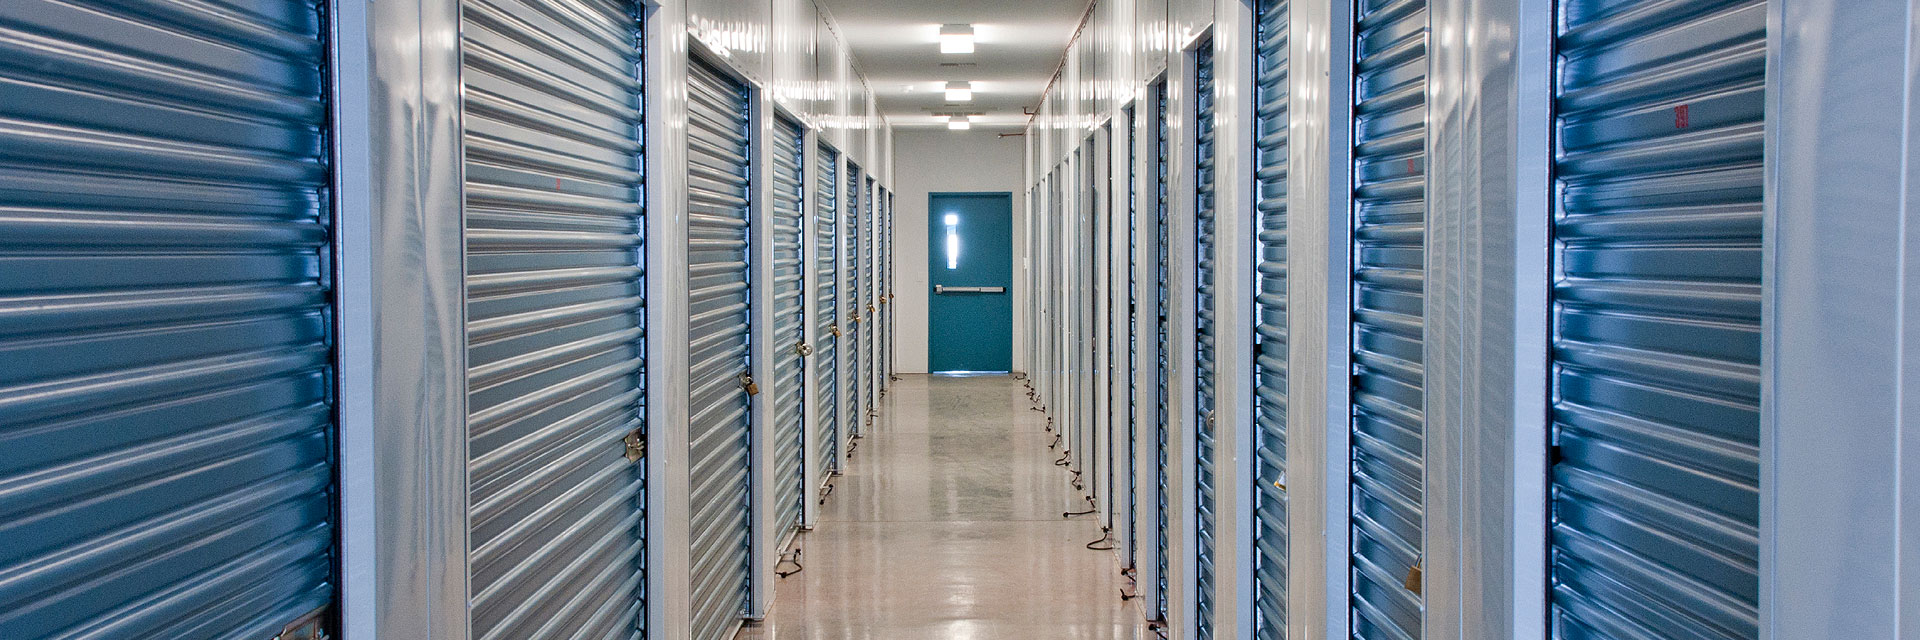 Find a self-storage broker in your area.